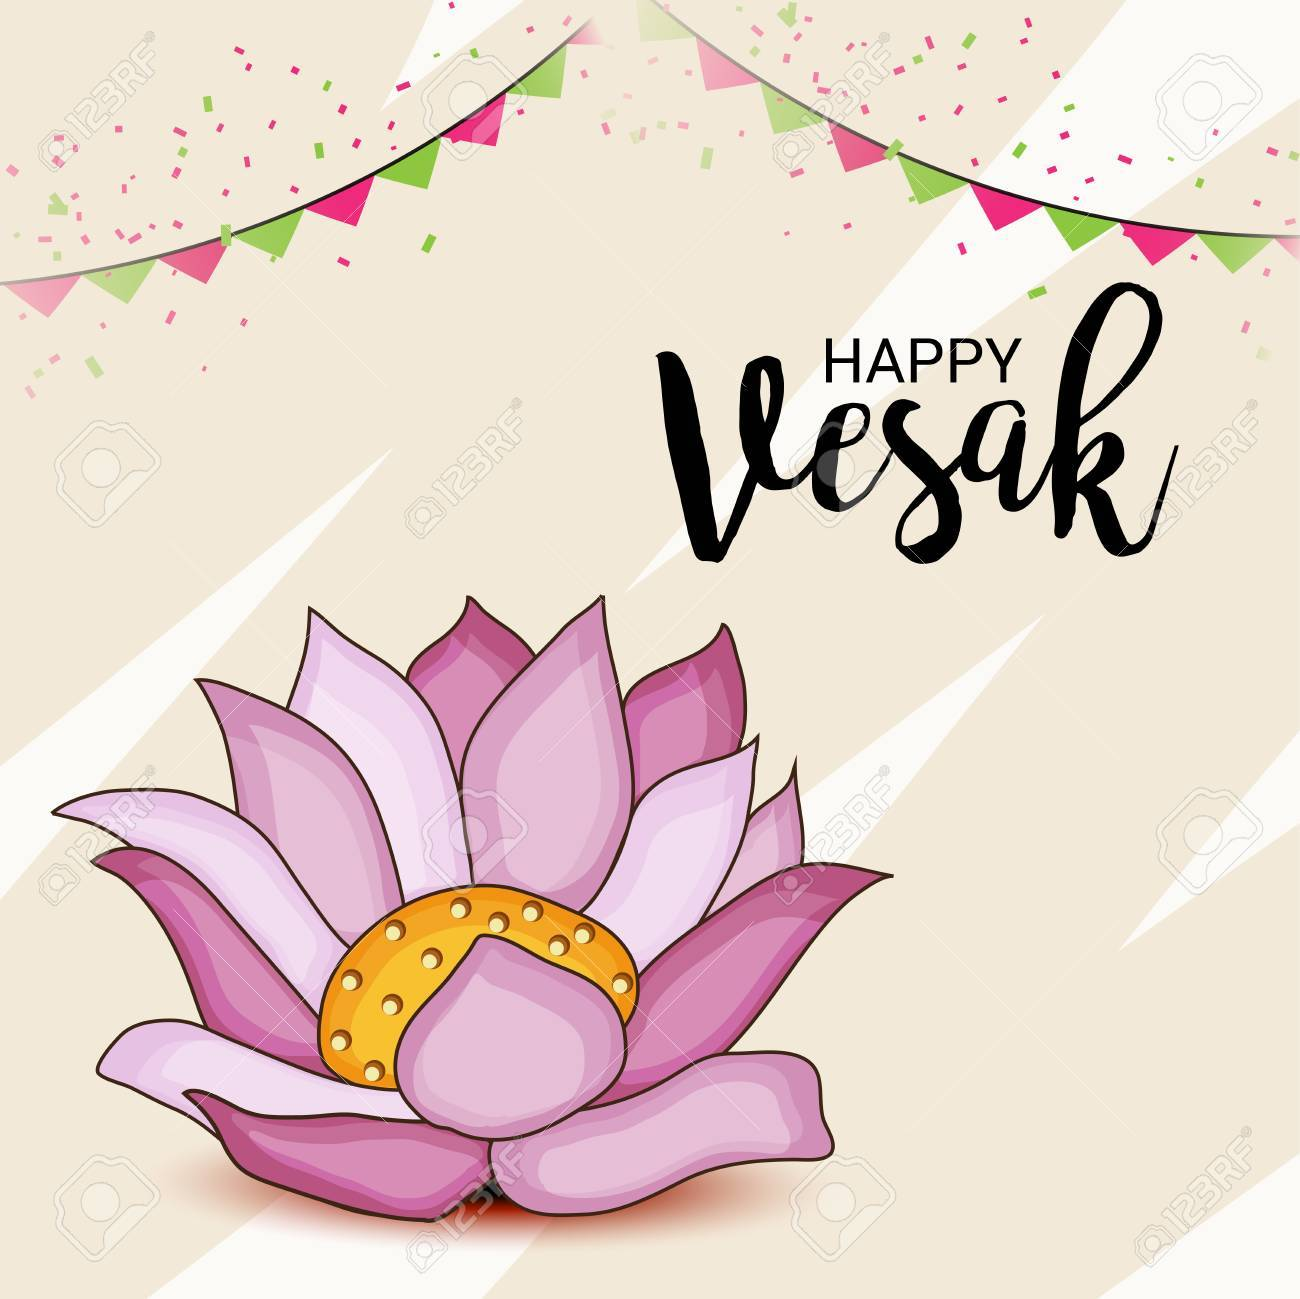 Wesak day clipart clip art black and white Wesak day clipart 8 » Clipart Portal clip art black and white